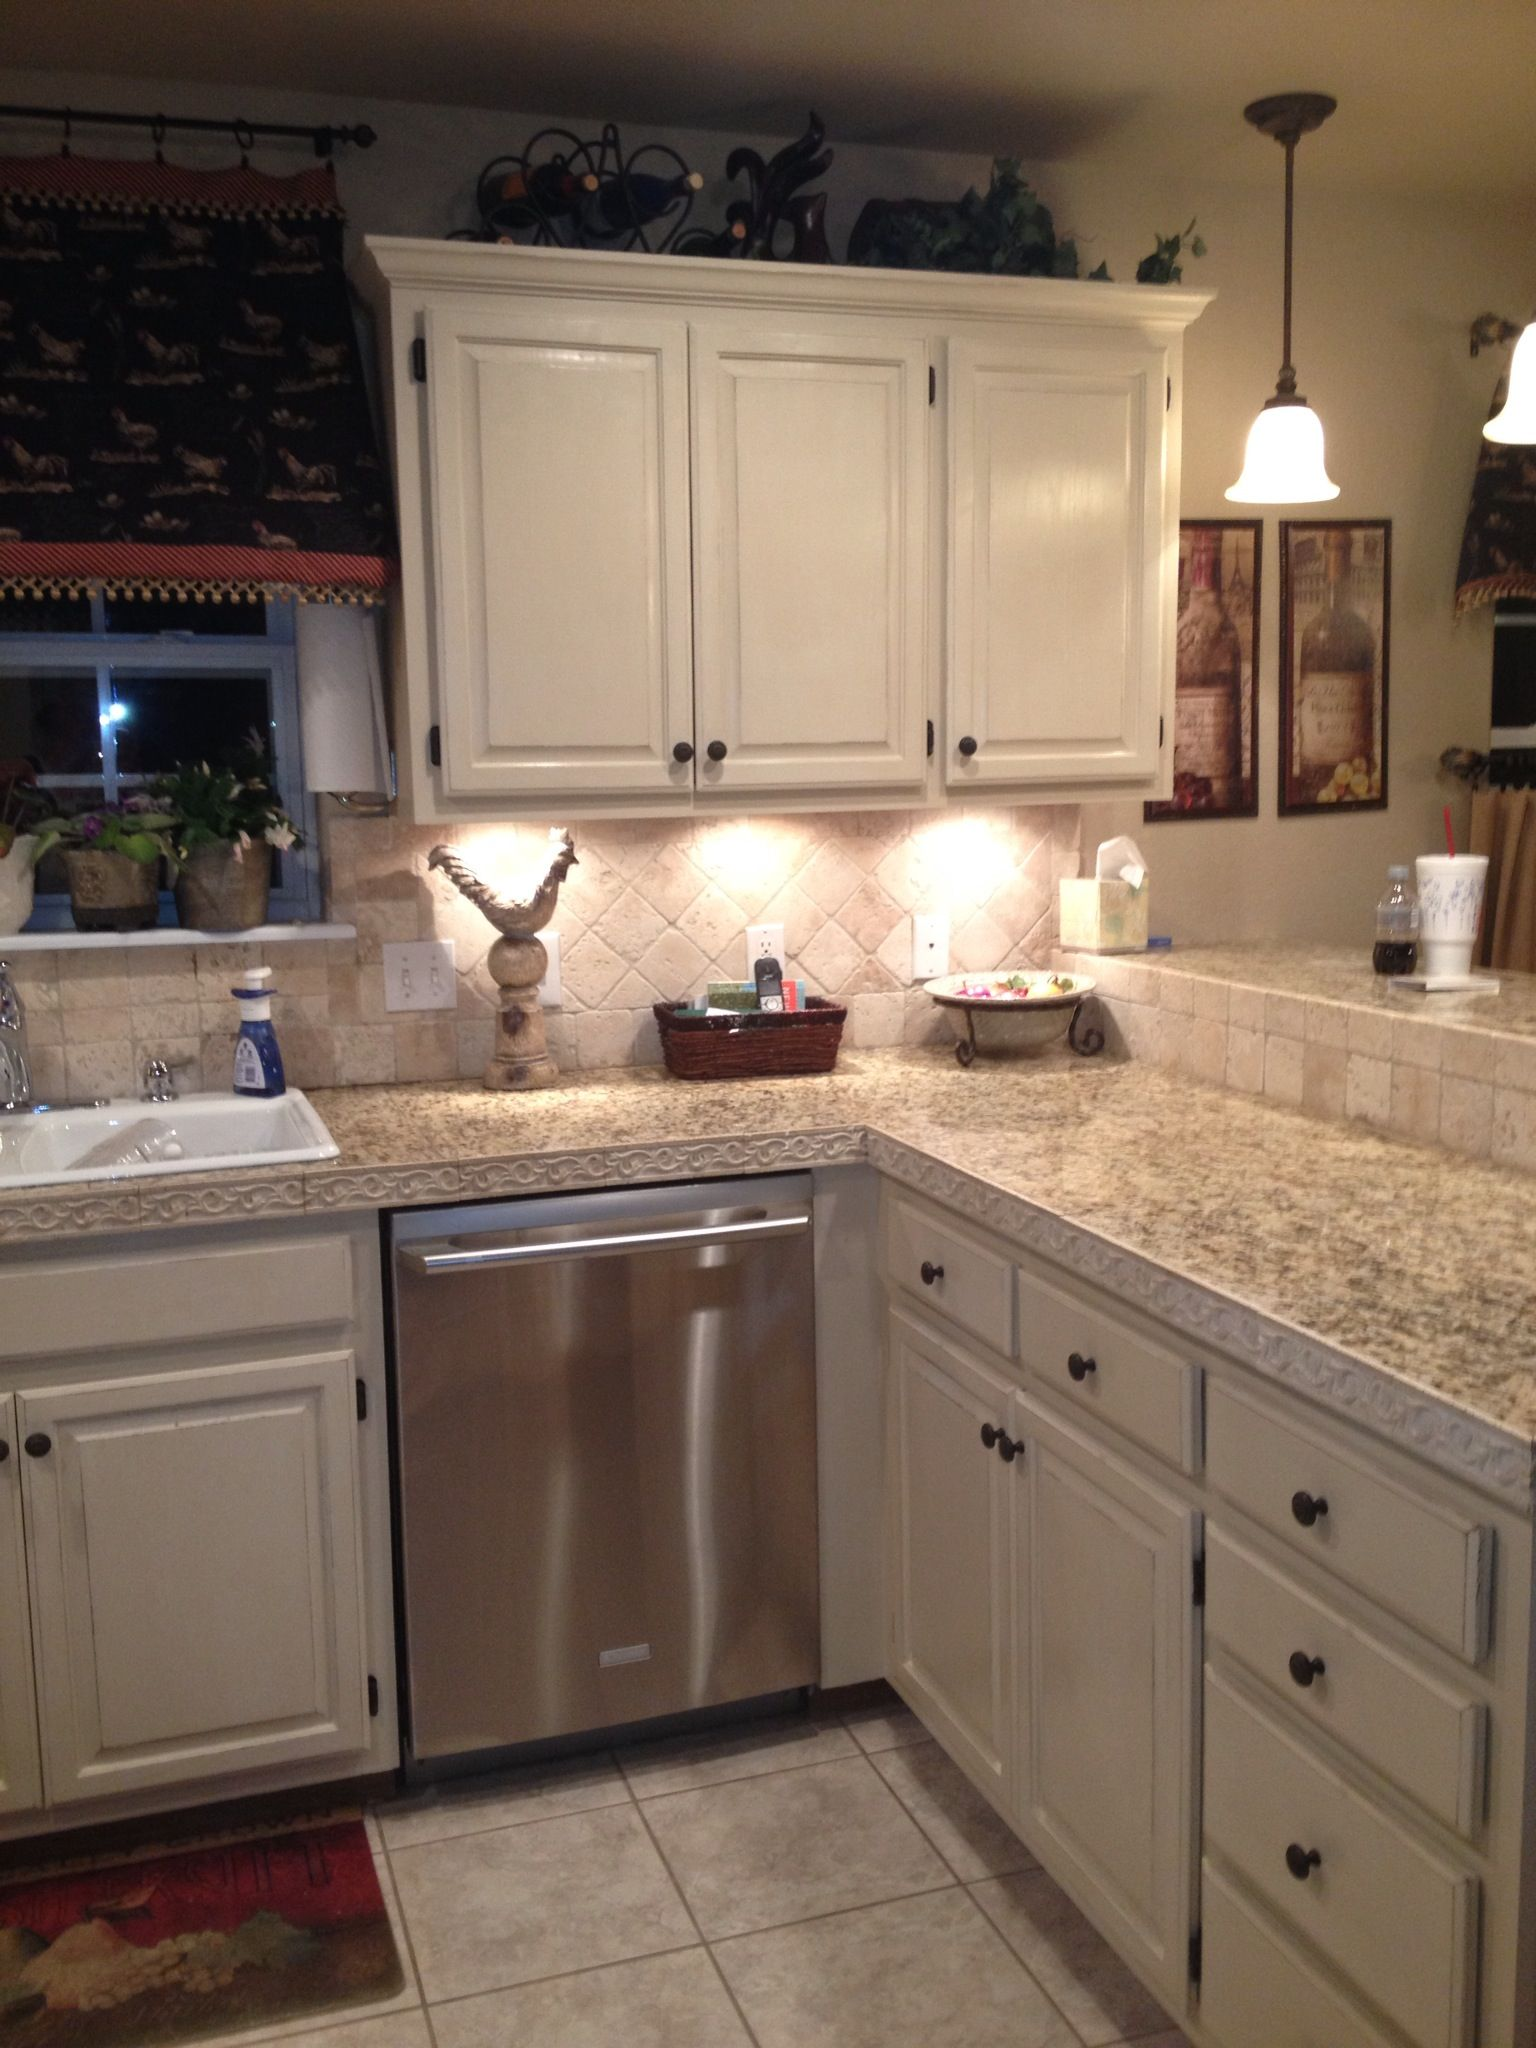 Pin By Crystal Ri On My Projects Kitchen Cabinetry Kitchen Remodel Kitchen Cabinets